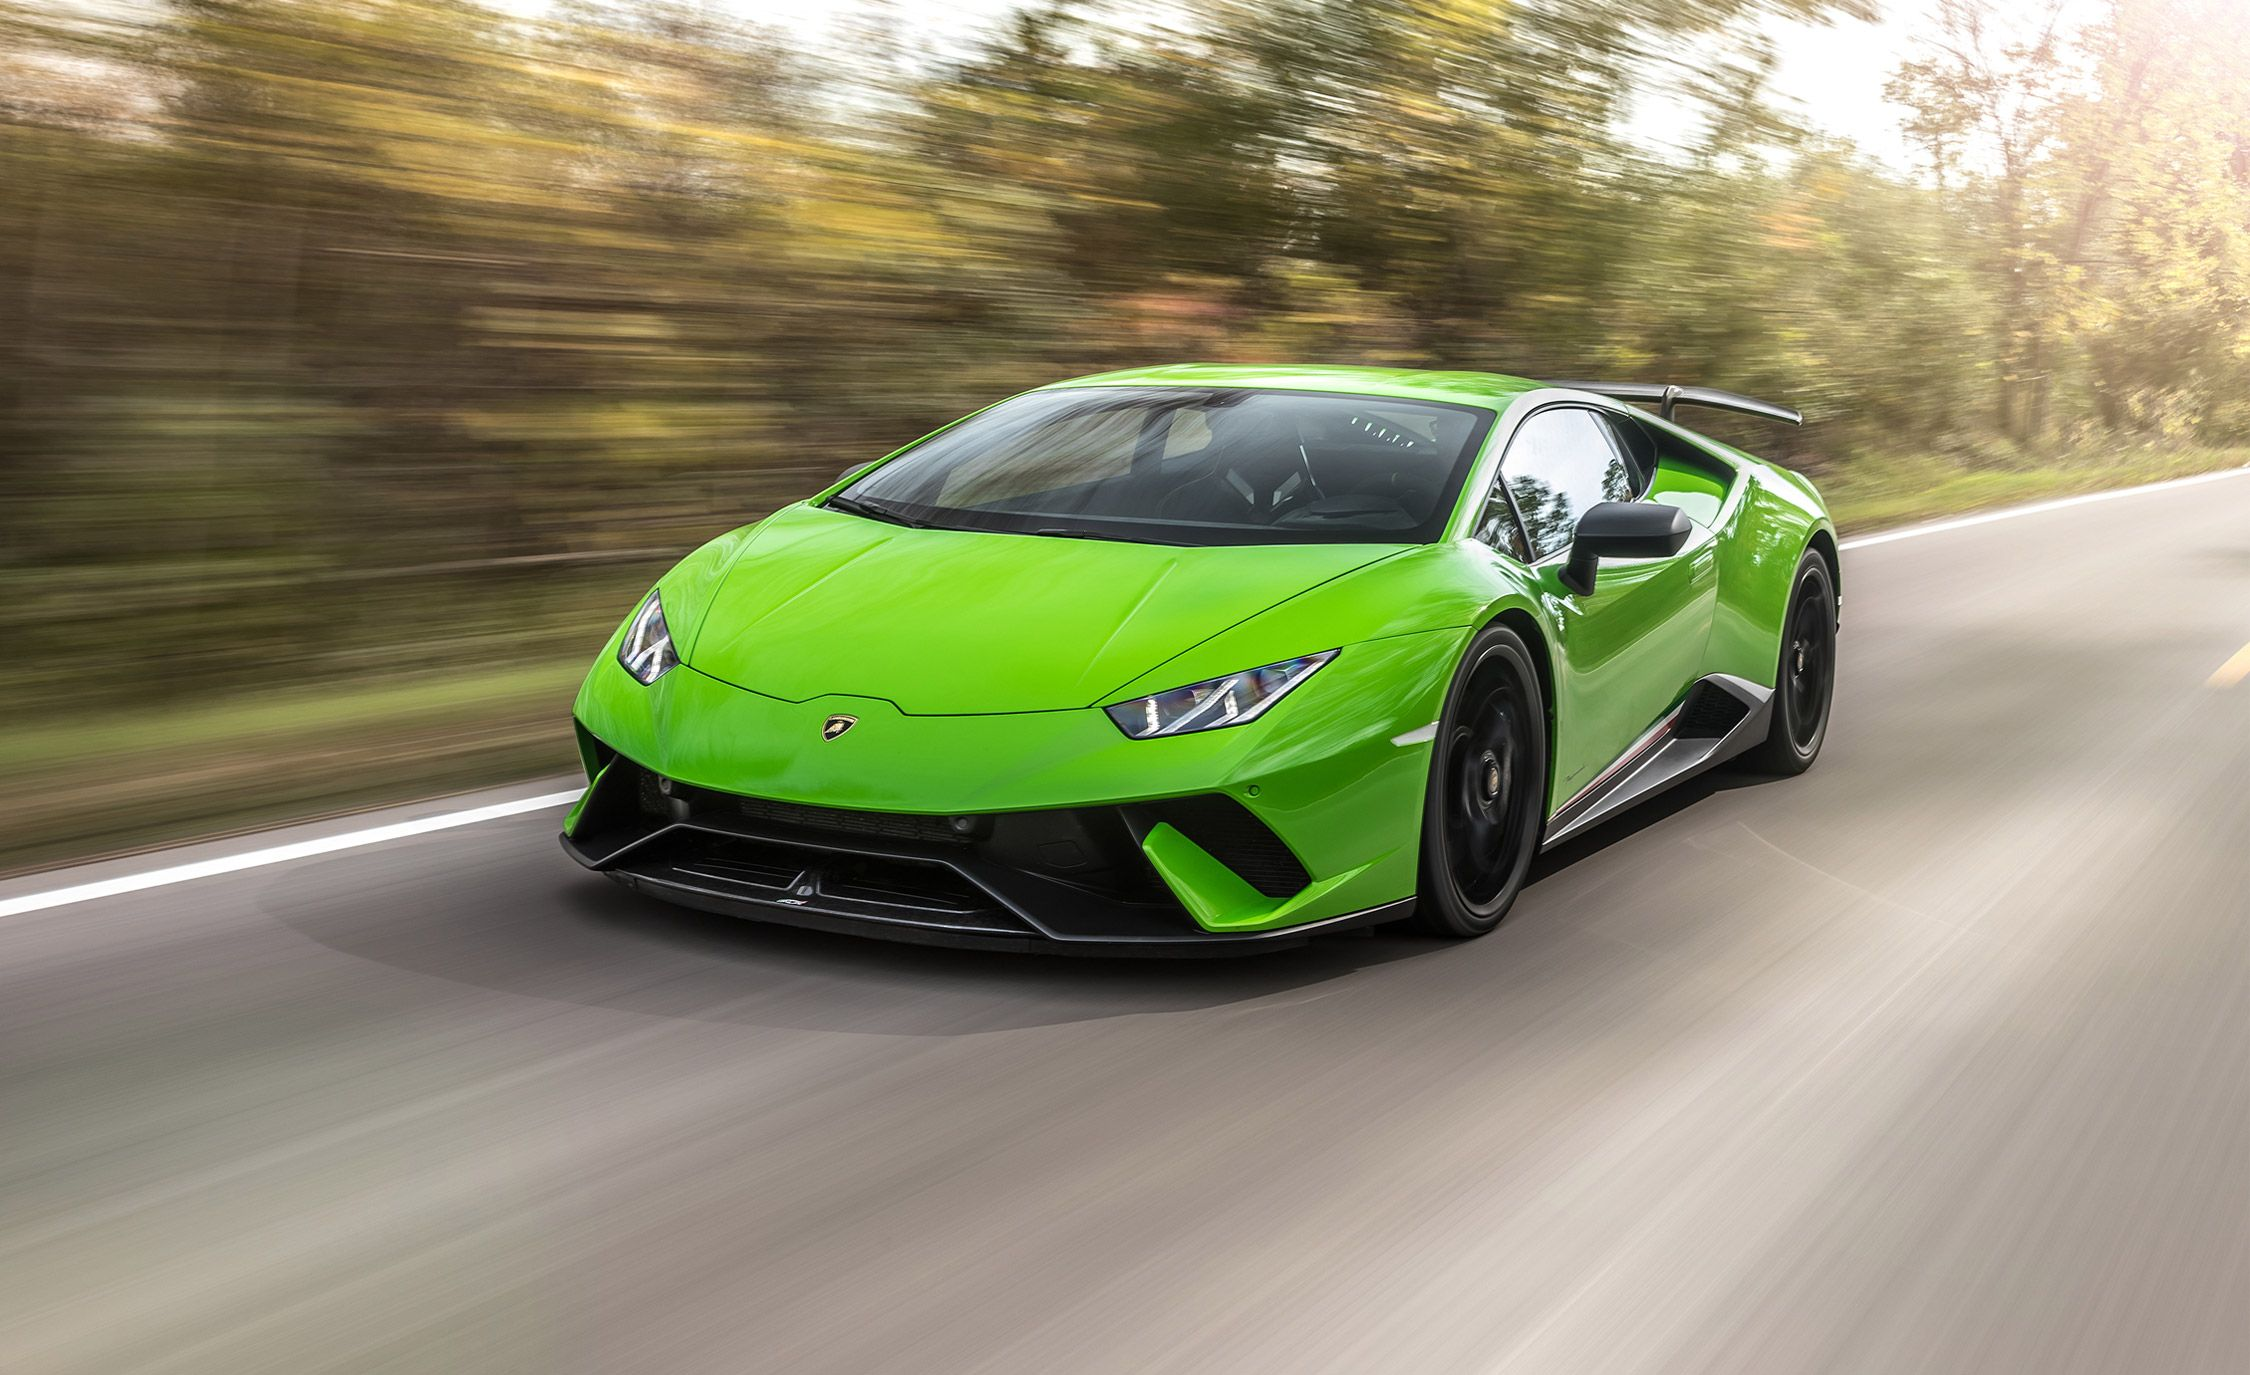 2018 Lamborghini Huracan Performante Test | Review | Car and Driver